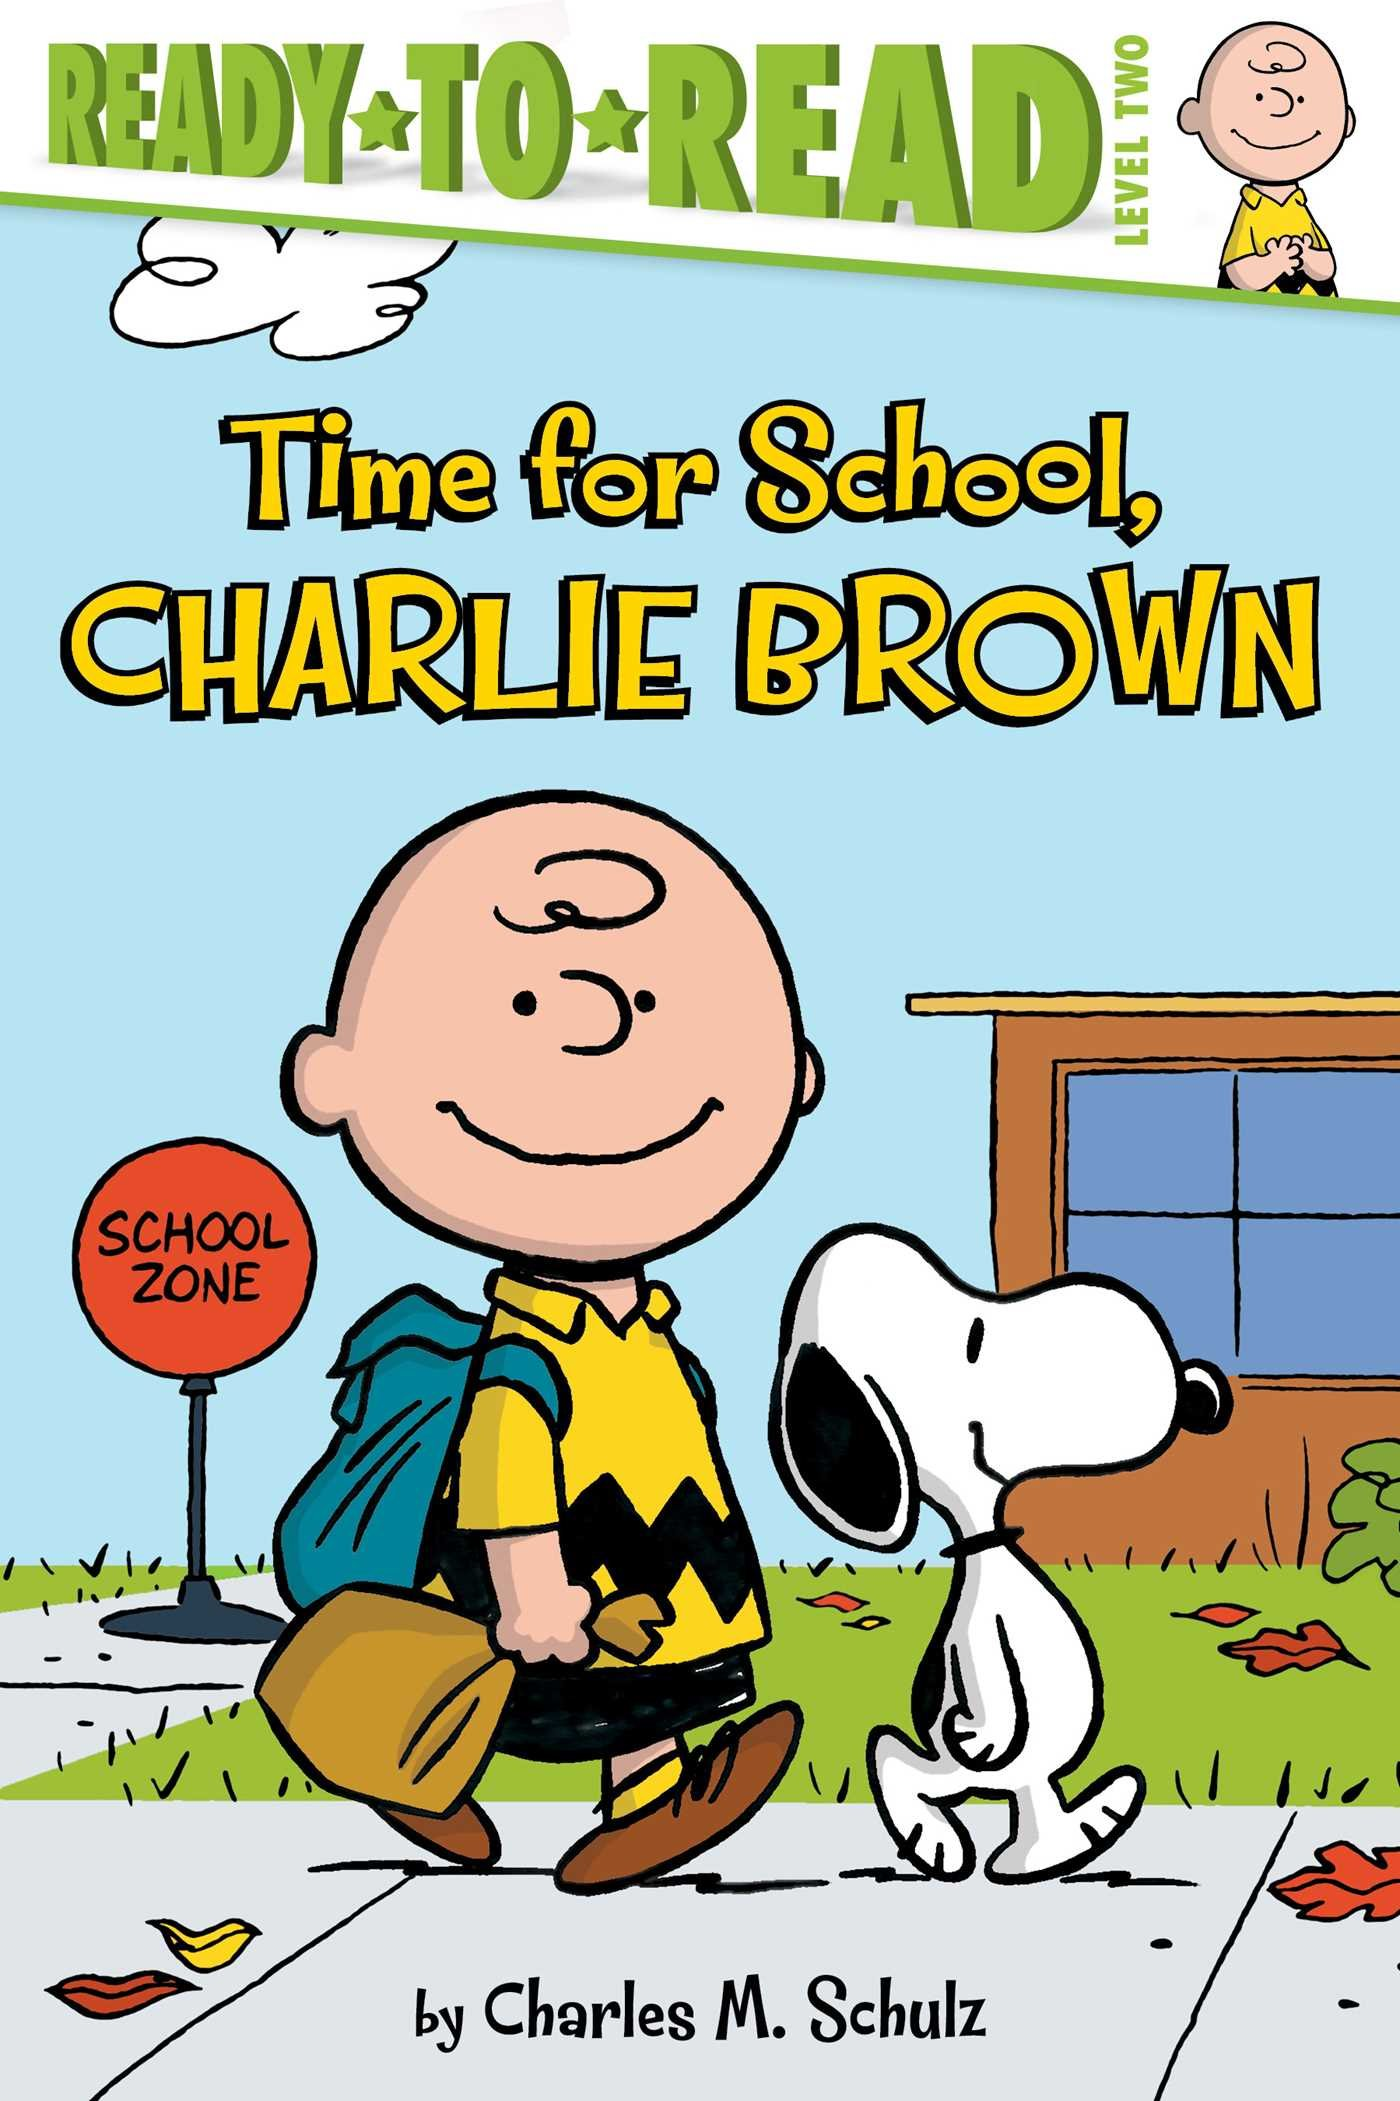 Time for School Charlie Brown Peanuts Maggie Testa Charles M